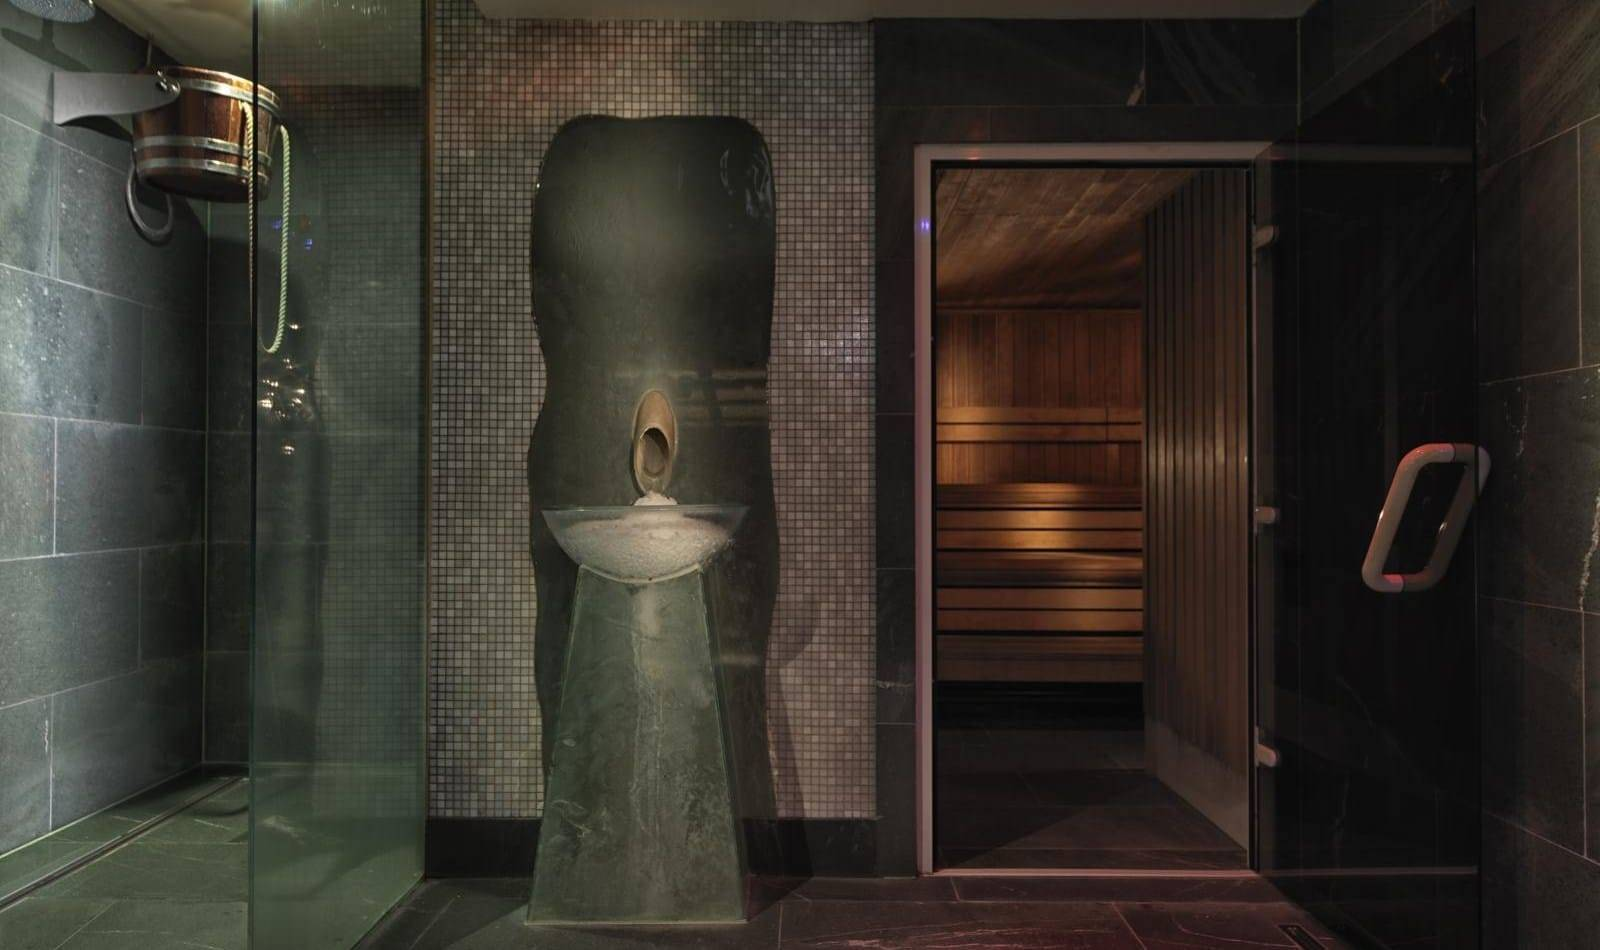 MAY SPA SAUNA P 1 - REVIEW: The Magnificent May Fair Hotel